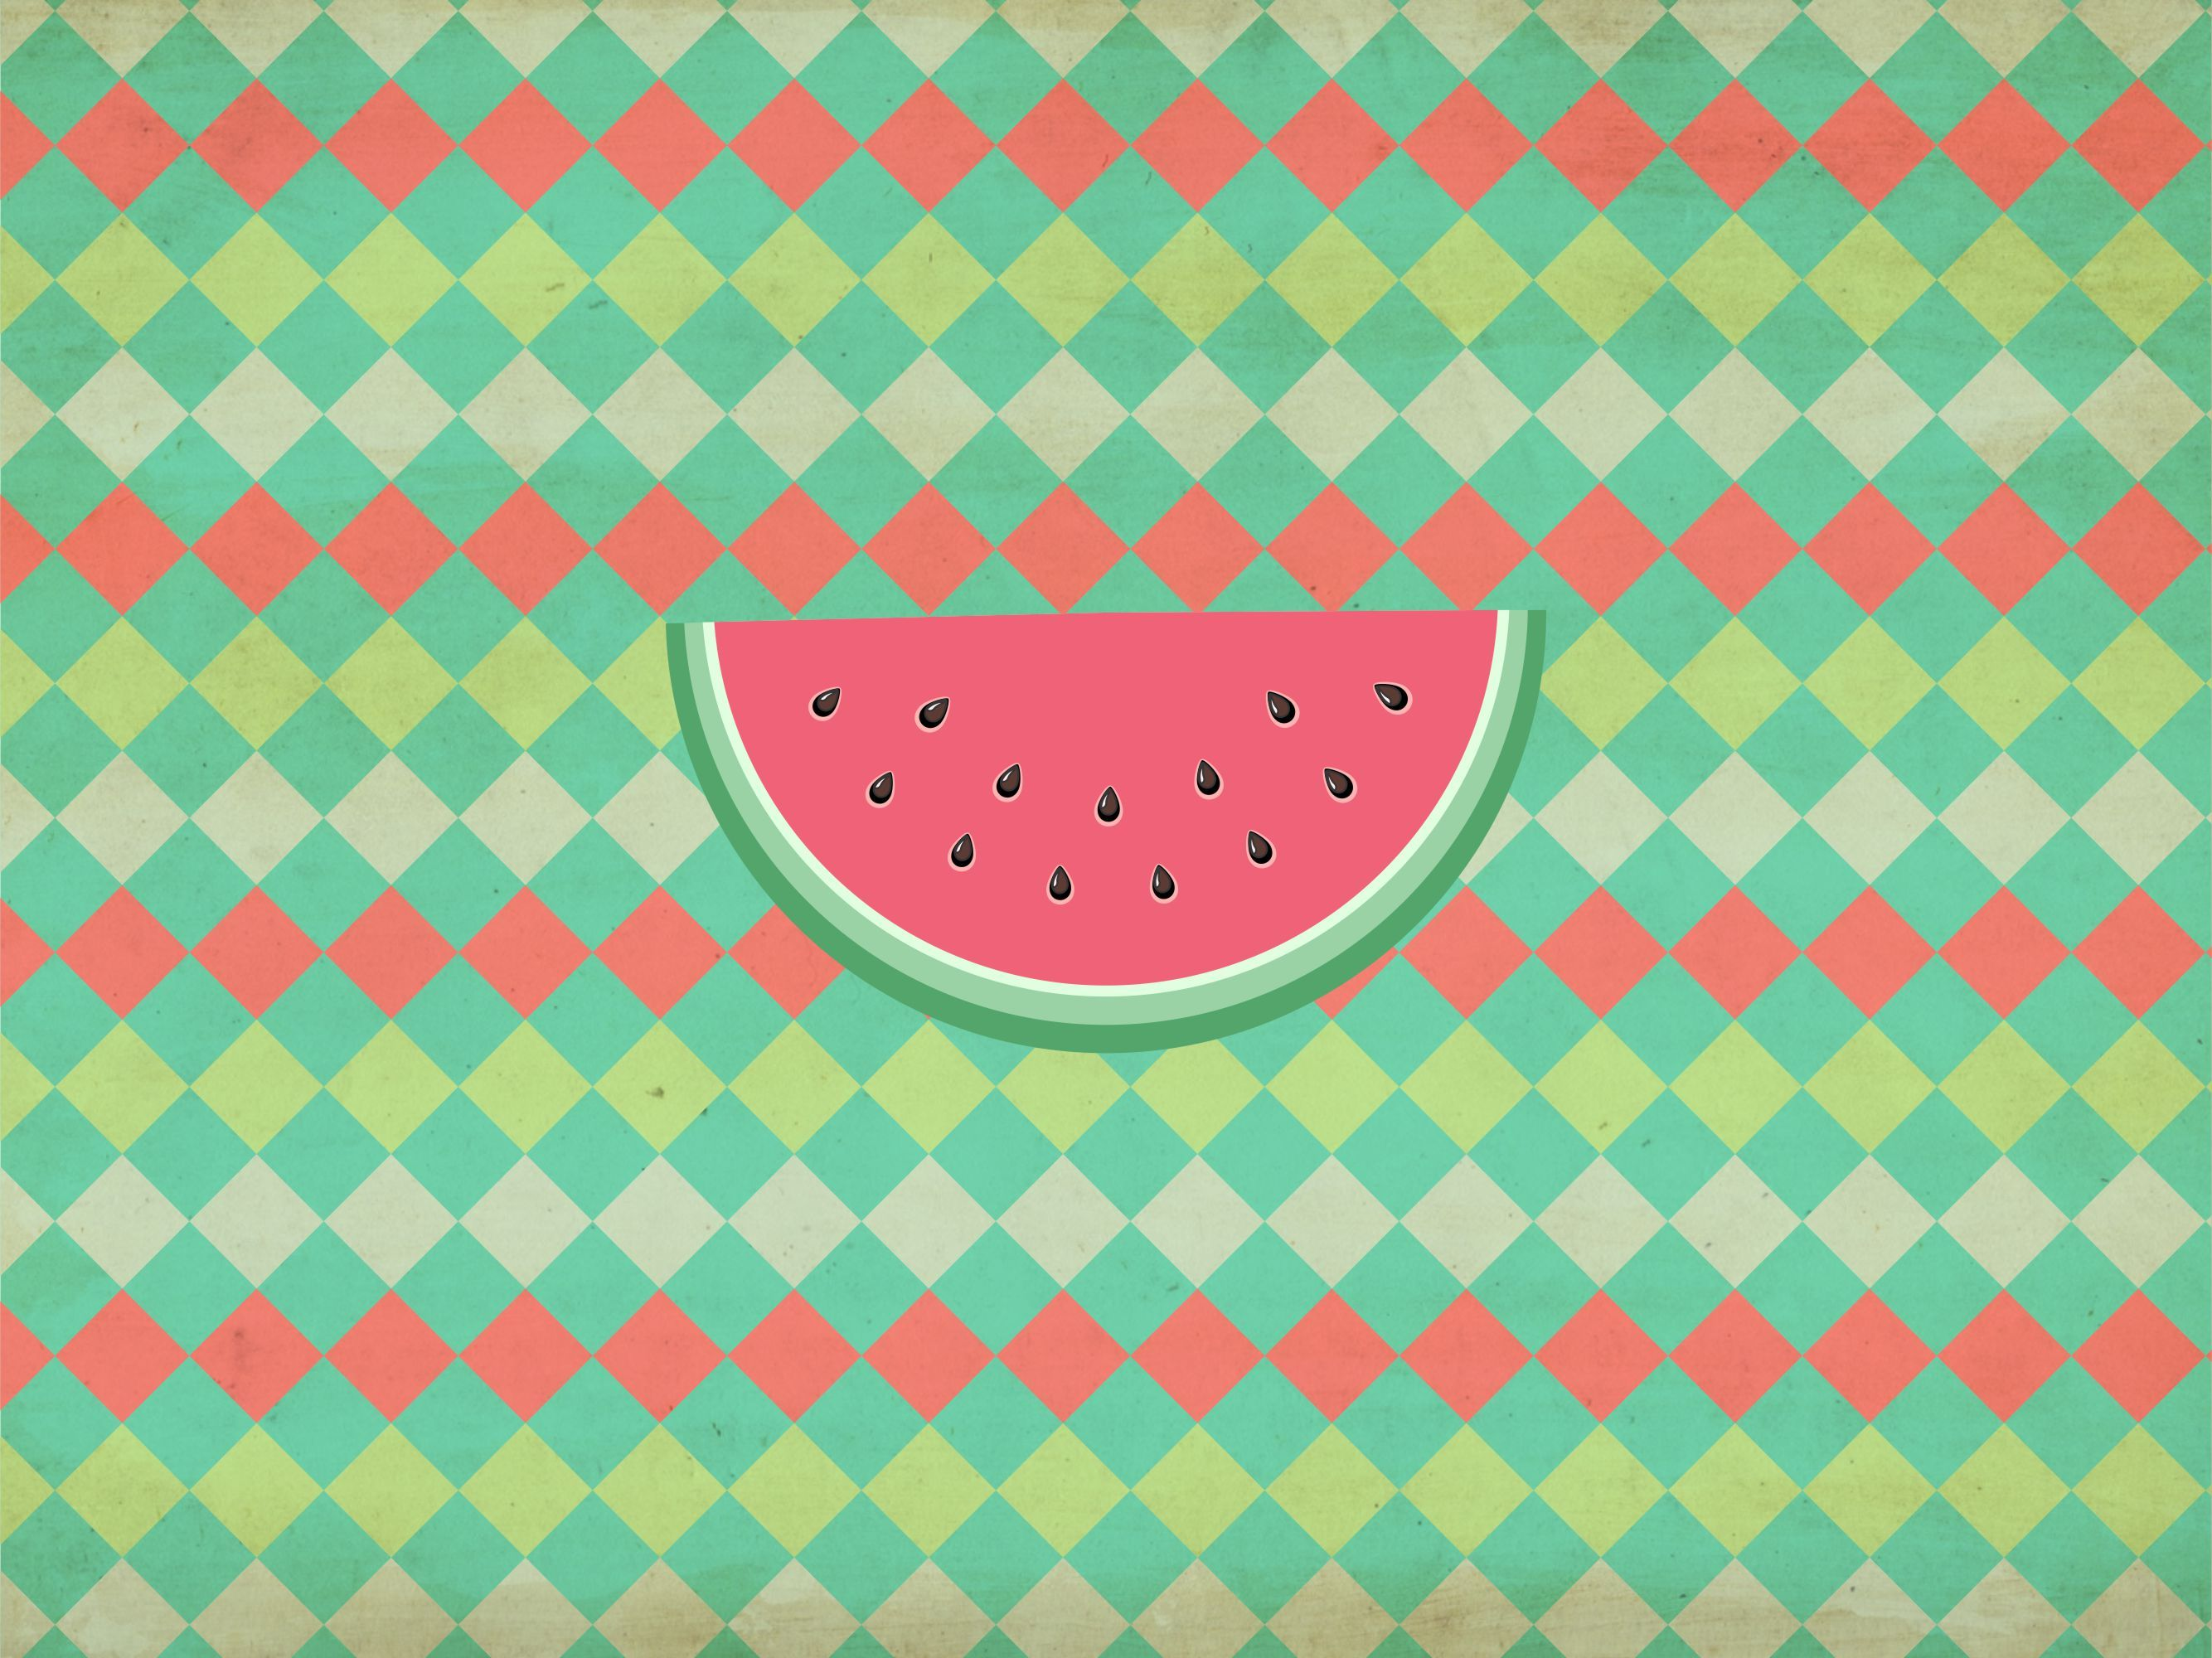 Watermelon wallpaper for Ipads and tablet so sweet and ...